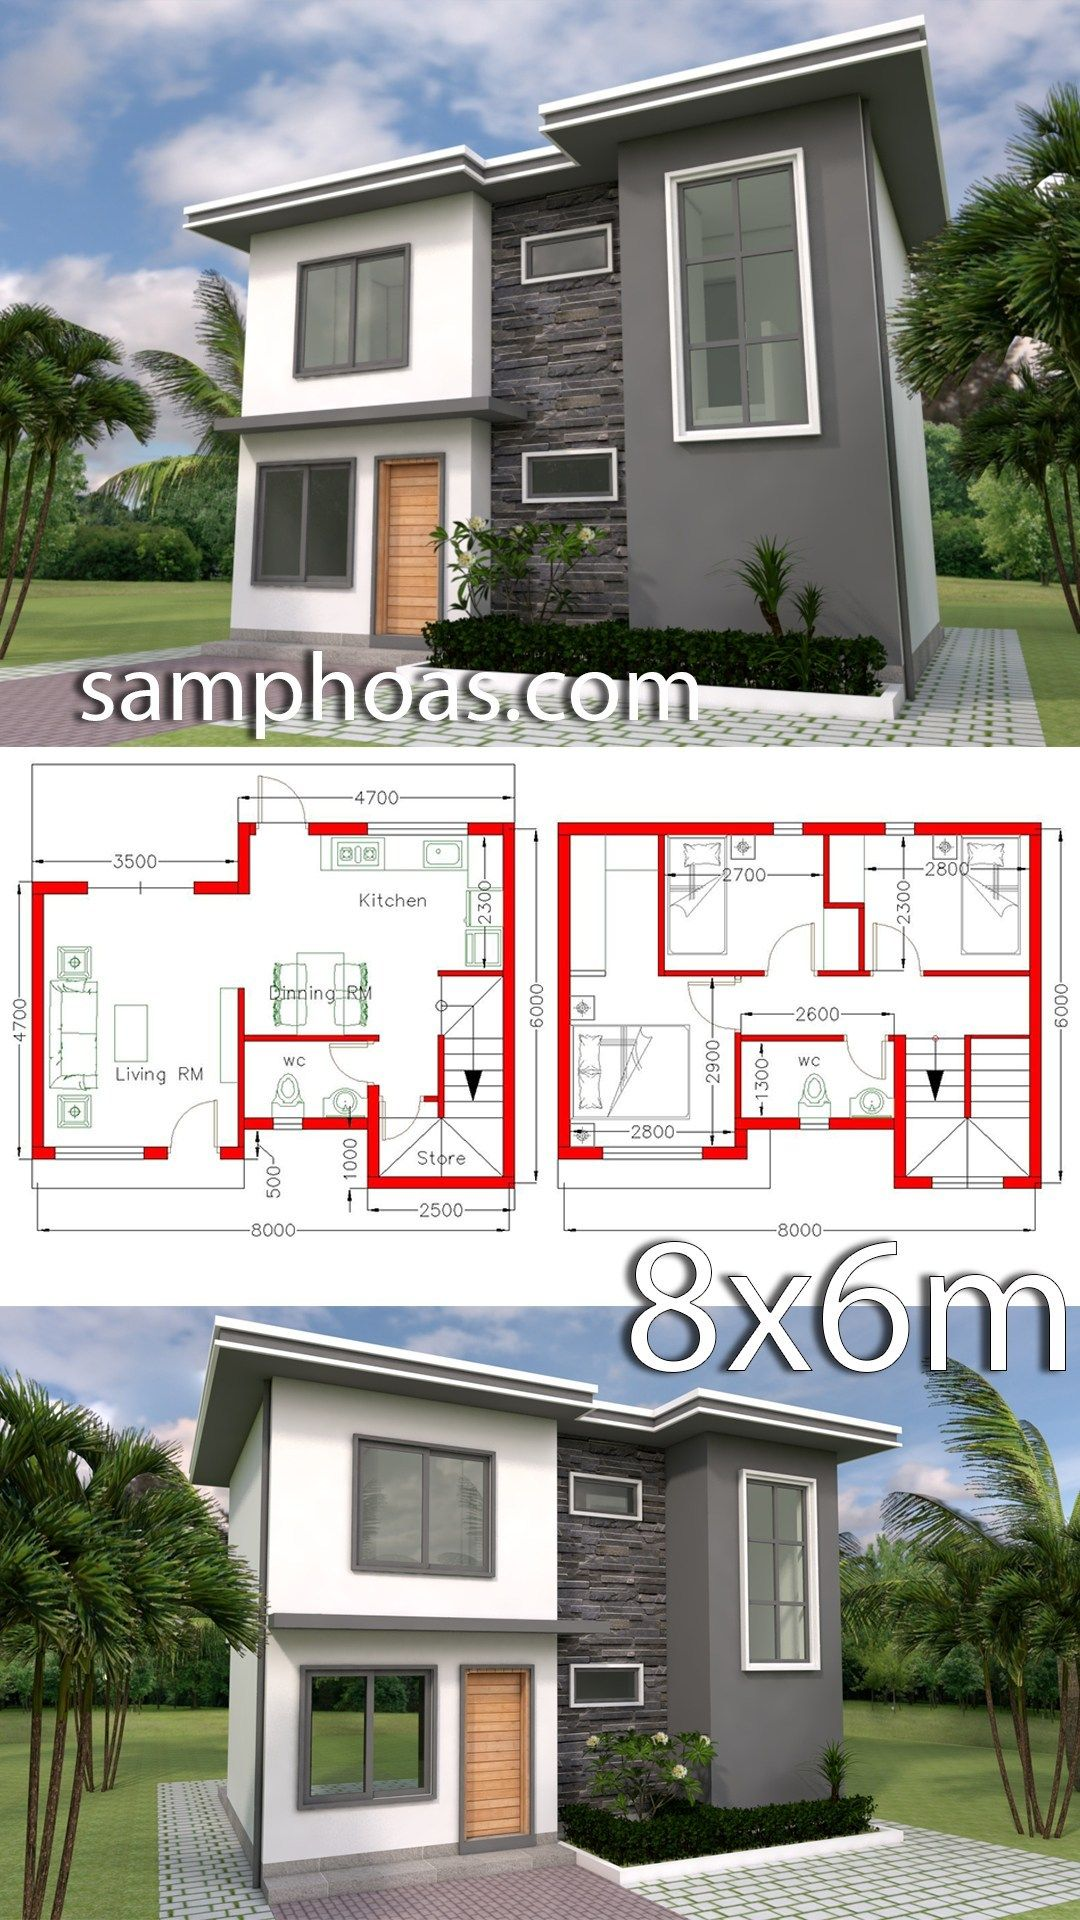 Plan 3d Home Design 8x6m With 3 Bedrooms Bungalow House Design